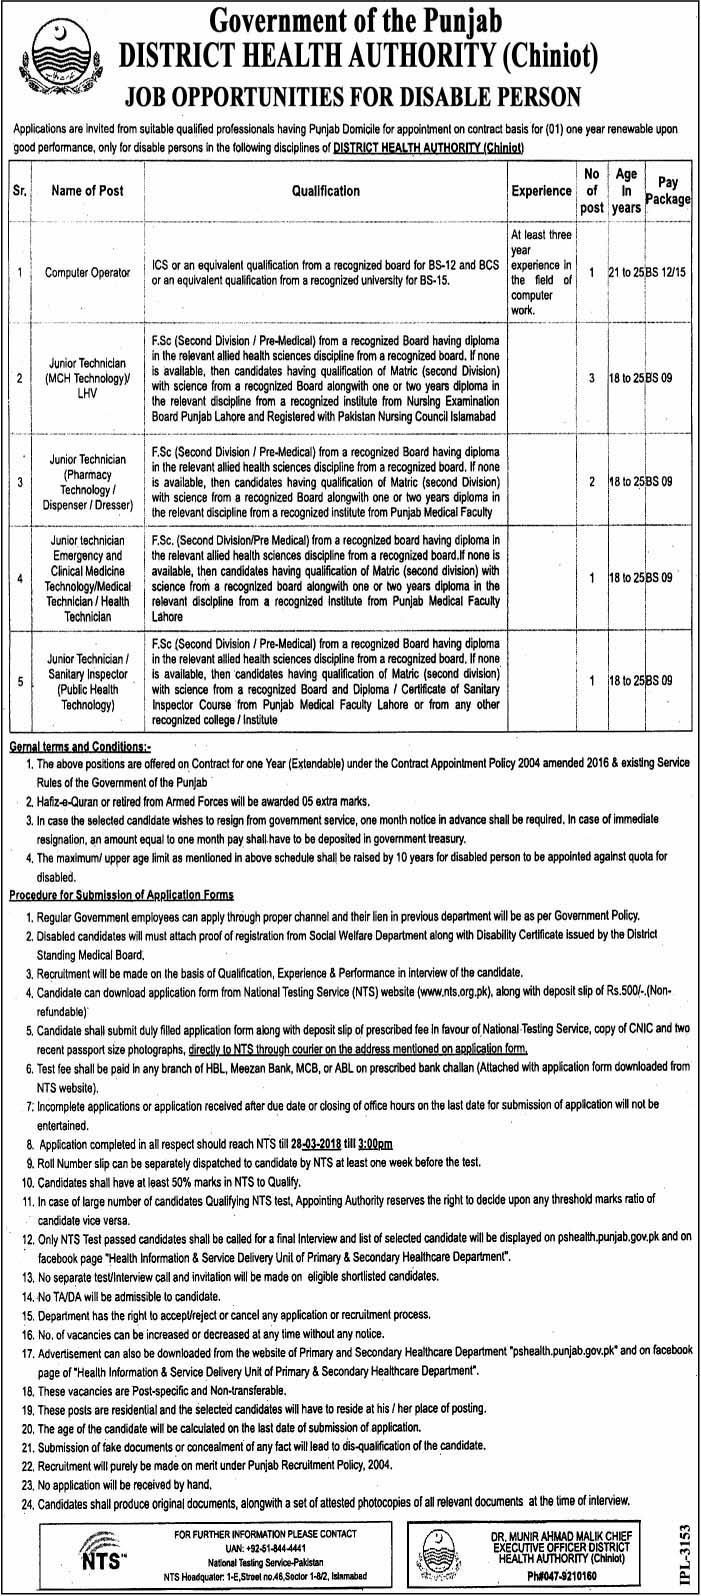 Jobs in Chiniot District Health Authority March 2018 via NTS